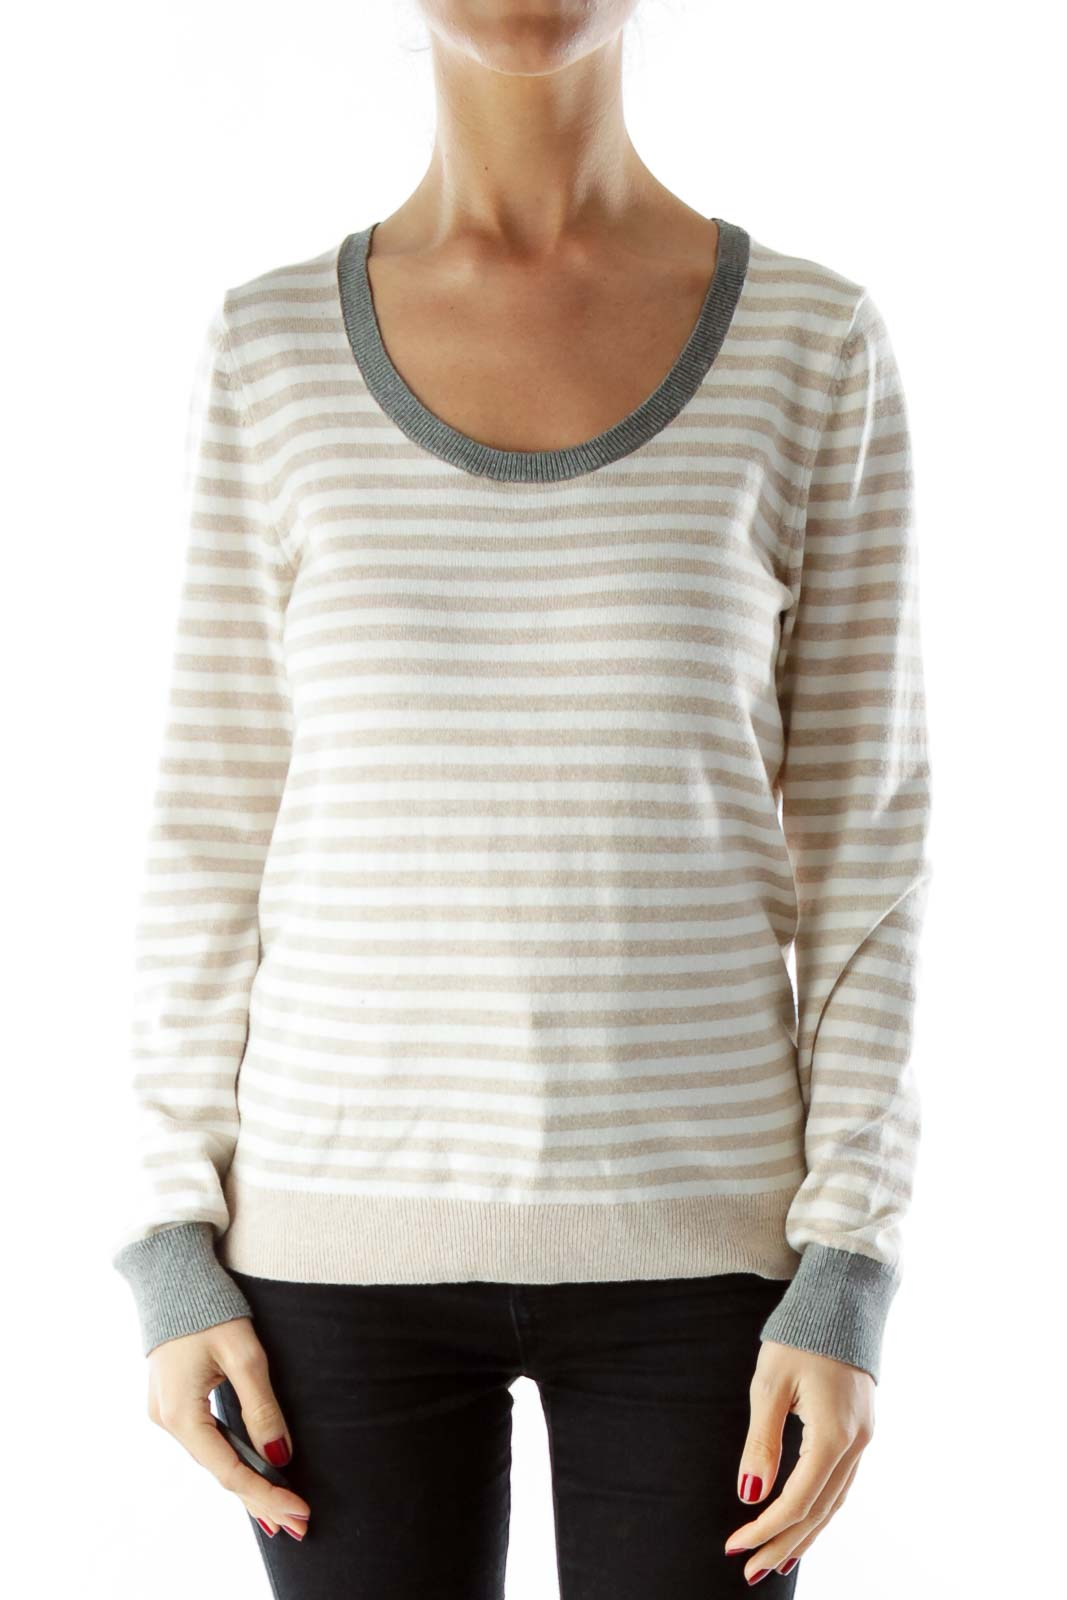 White and Brown striped sweater